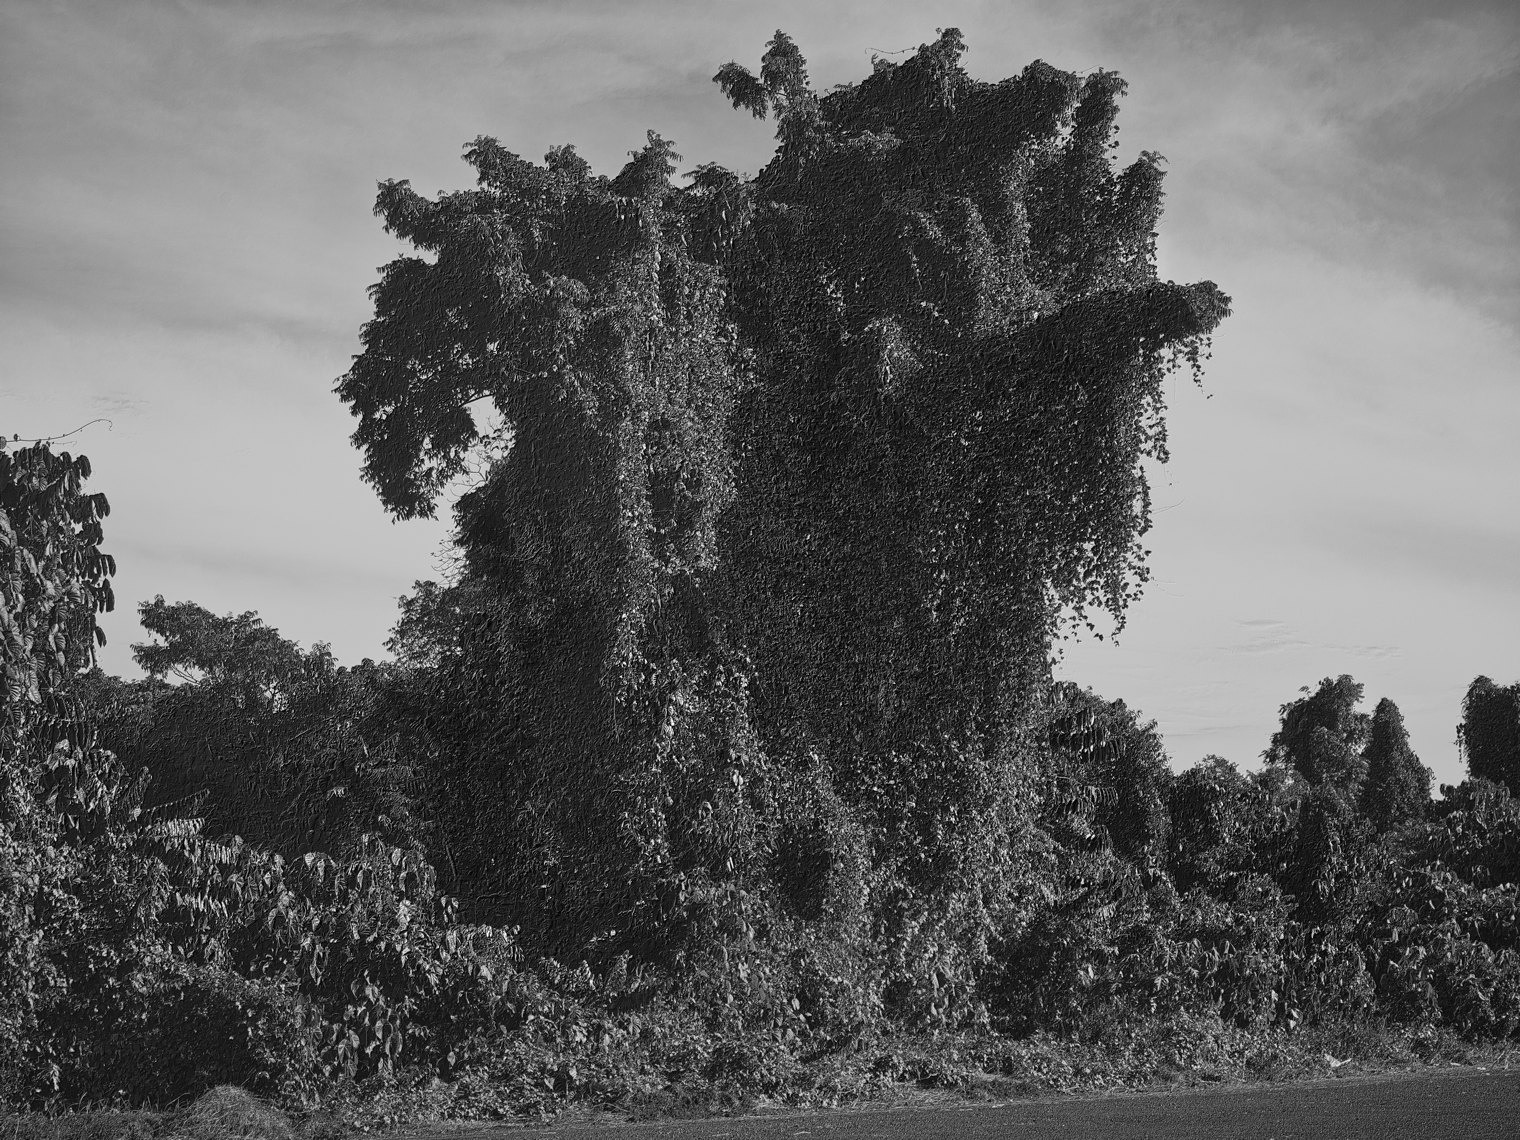 Jon Wyatt Photography - Fault Line I - A tsunami of vegetation - invasive vines in samoa